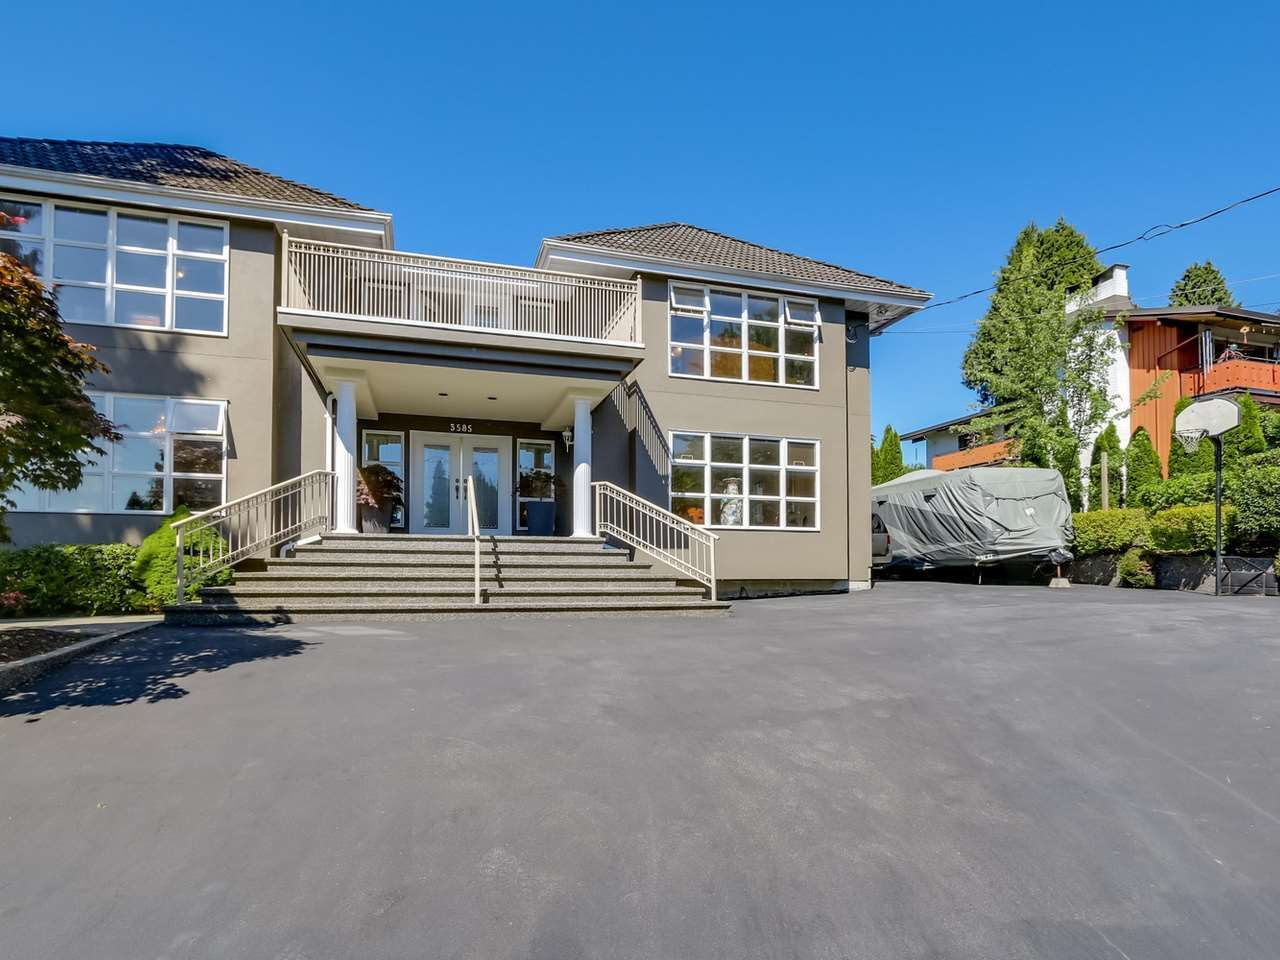 """Main Photo: 3585 BRIGHTON Drive in Burnaby: Government Road House for sale in """"GOVERNMENT ROAD AREA"""" (Burnaby North)  : MLS®# R2069615"""